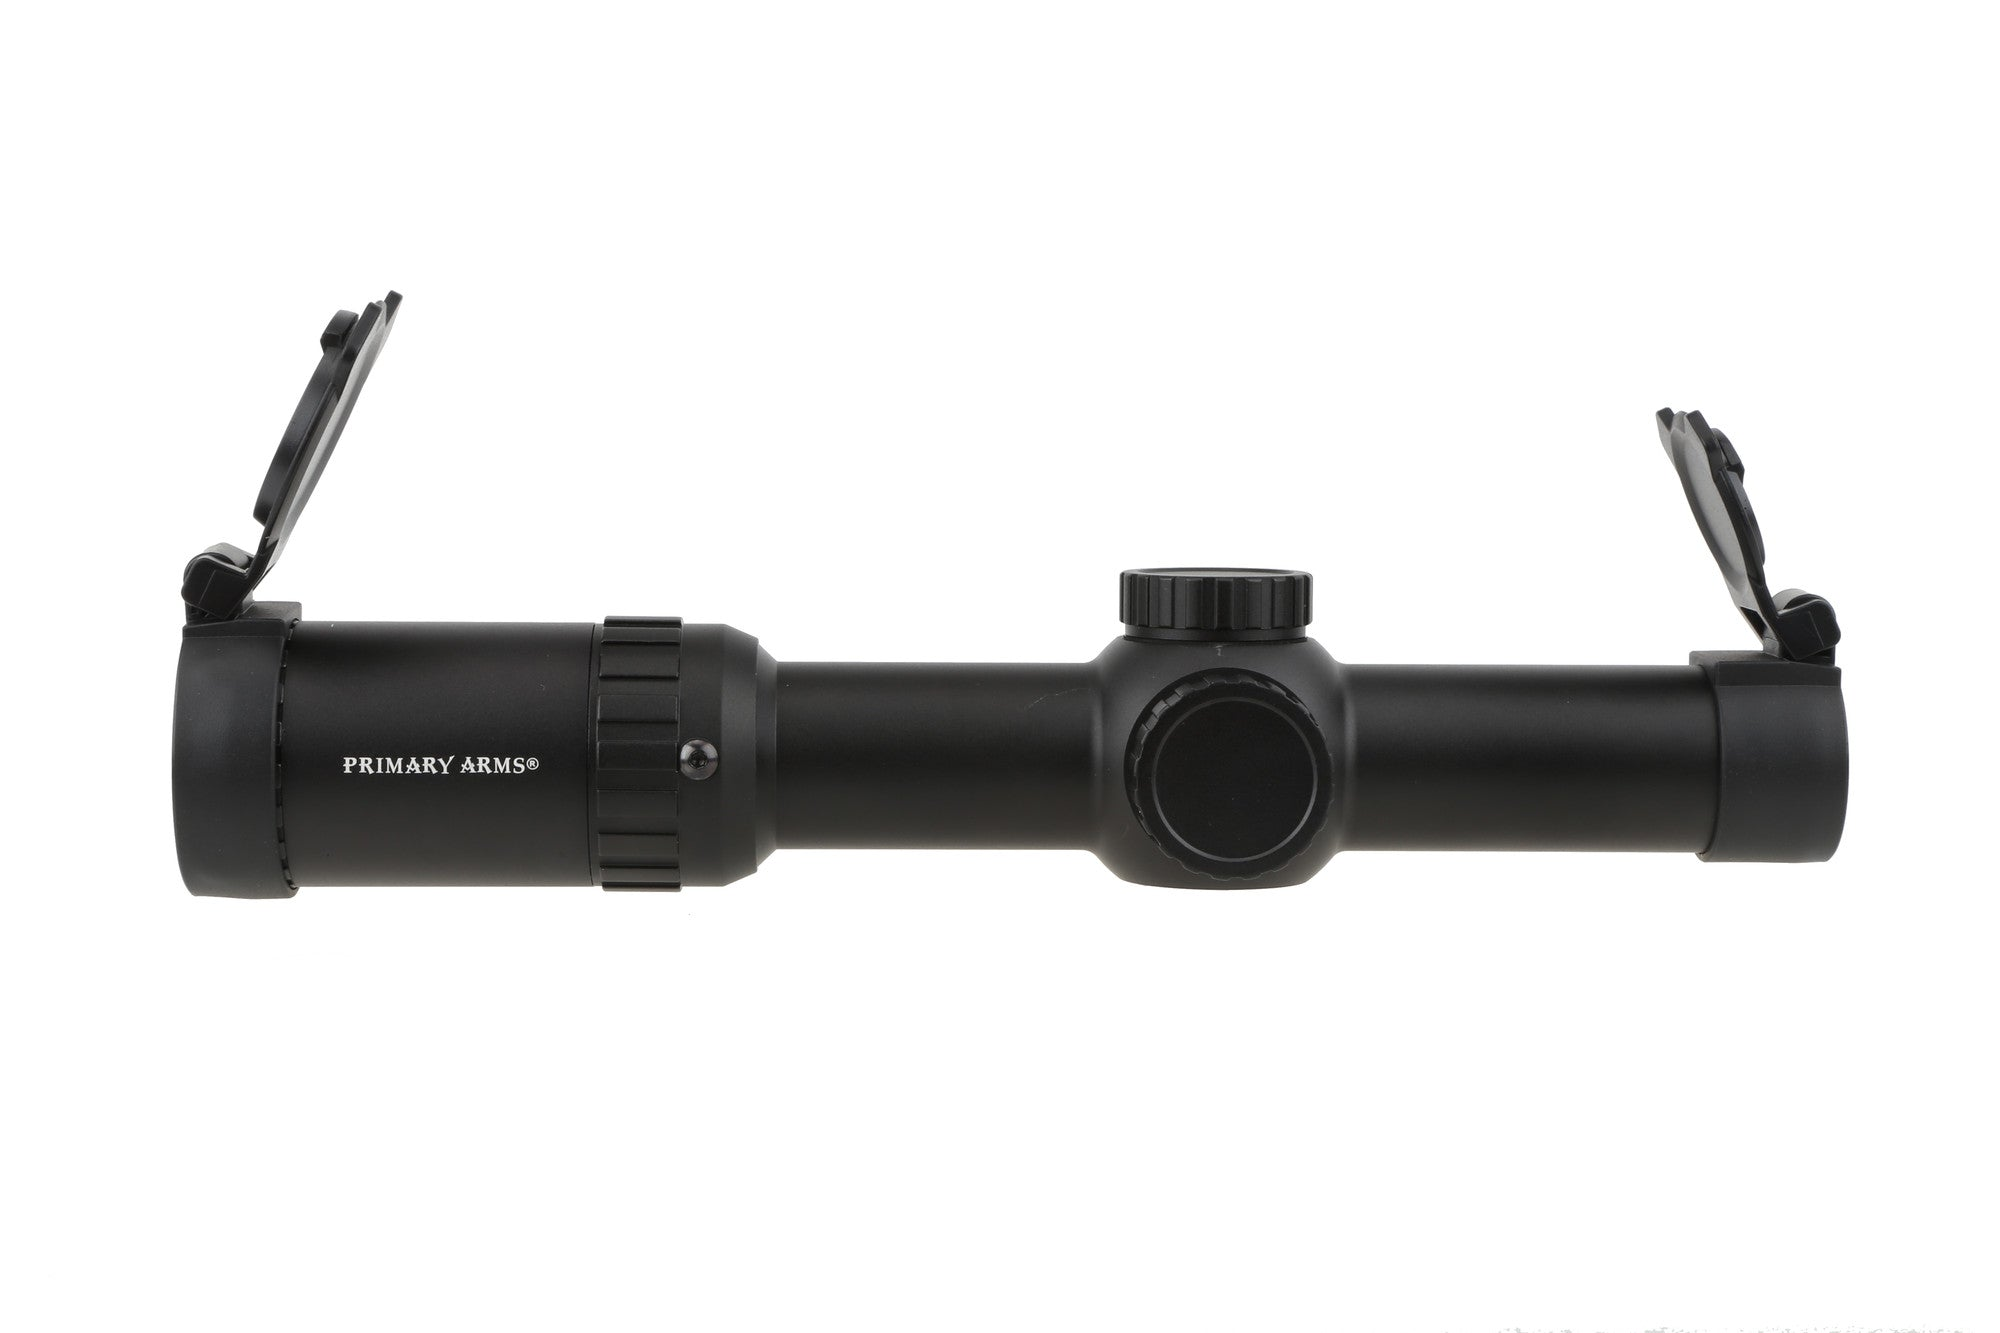 ... Primary Arms 1-8X Scope with Patented ACSS 5.56 / 5.45 / .308 Reticle  ...